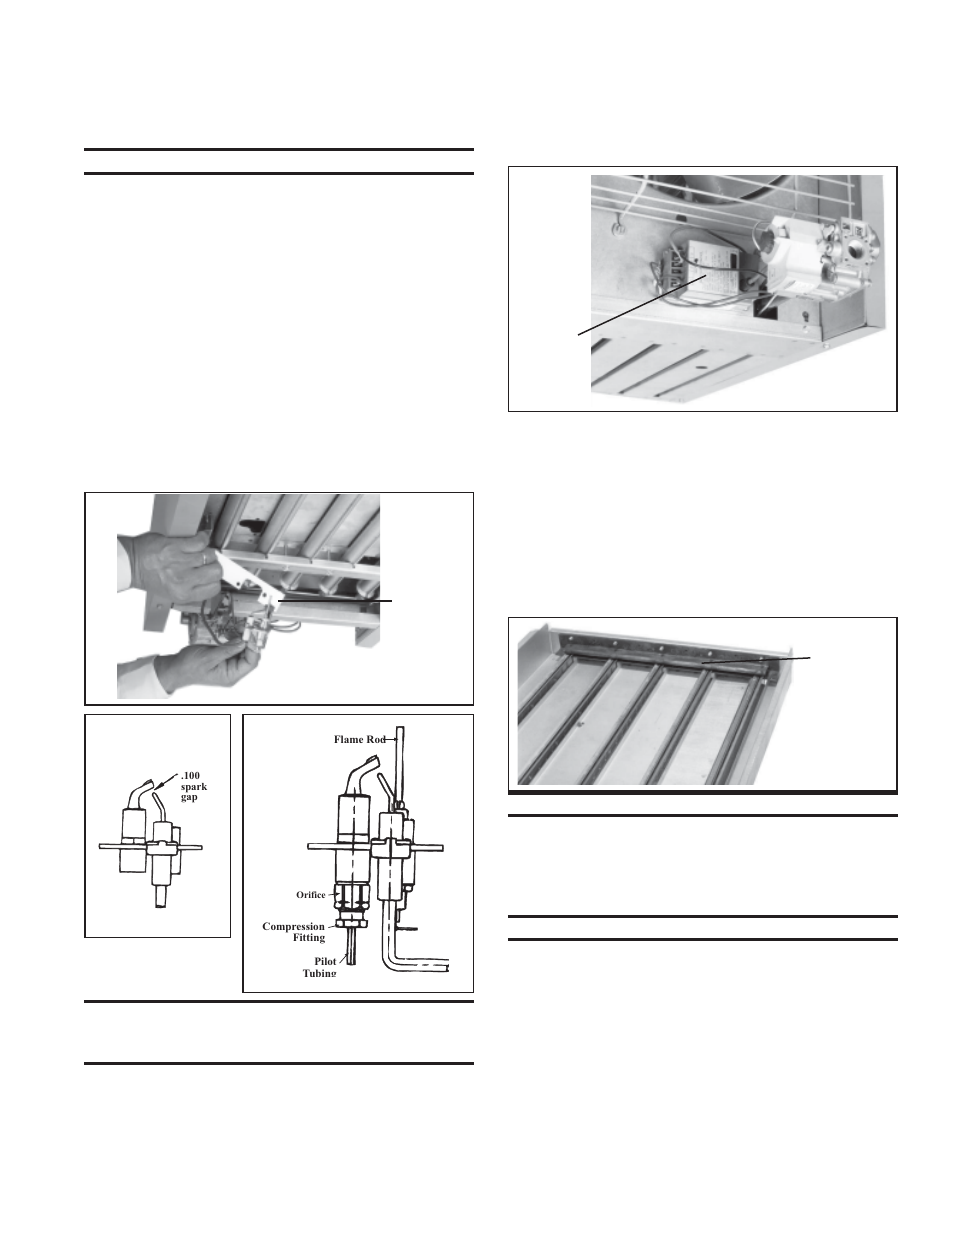 Pilot And Ignition System Flash Carryover Burner Orifices Reznor Assembly For Furnace Wiring Be Unit Installation Manual User Page 26 29